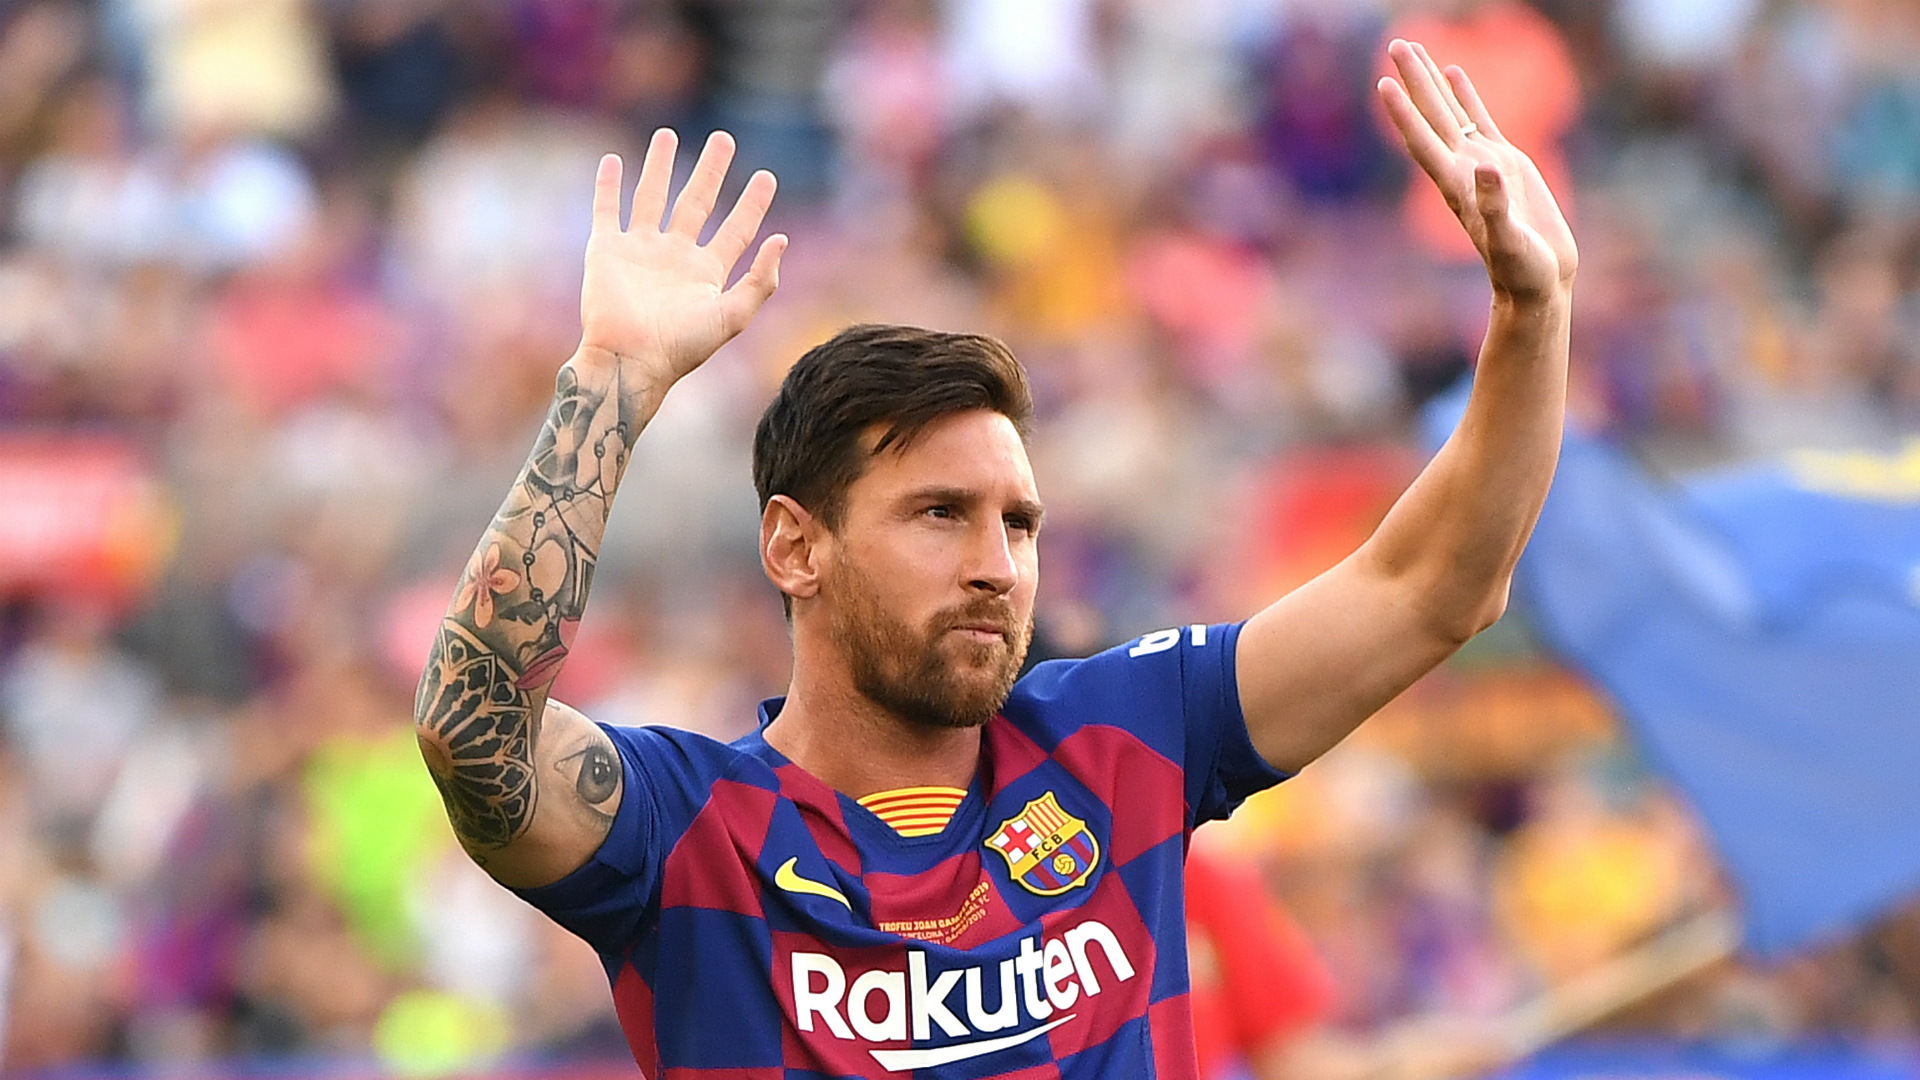 Messi will only play if he is 100 per cent fit, says Valverde